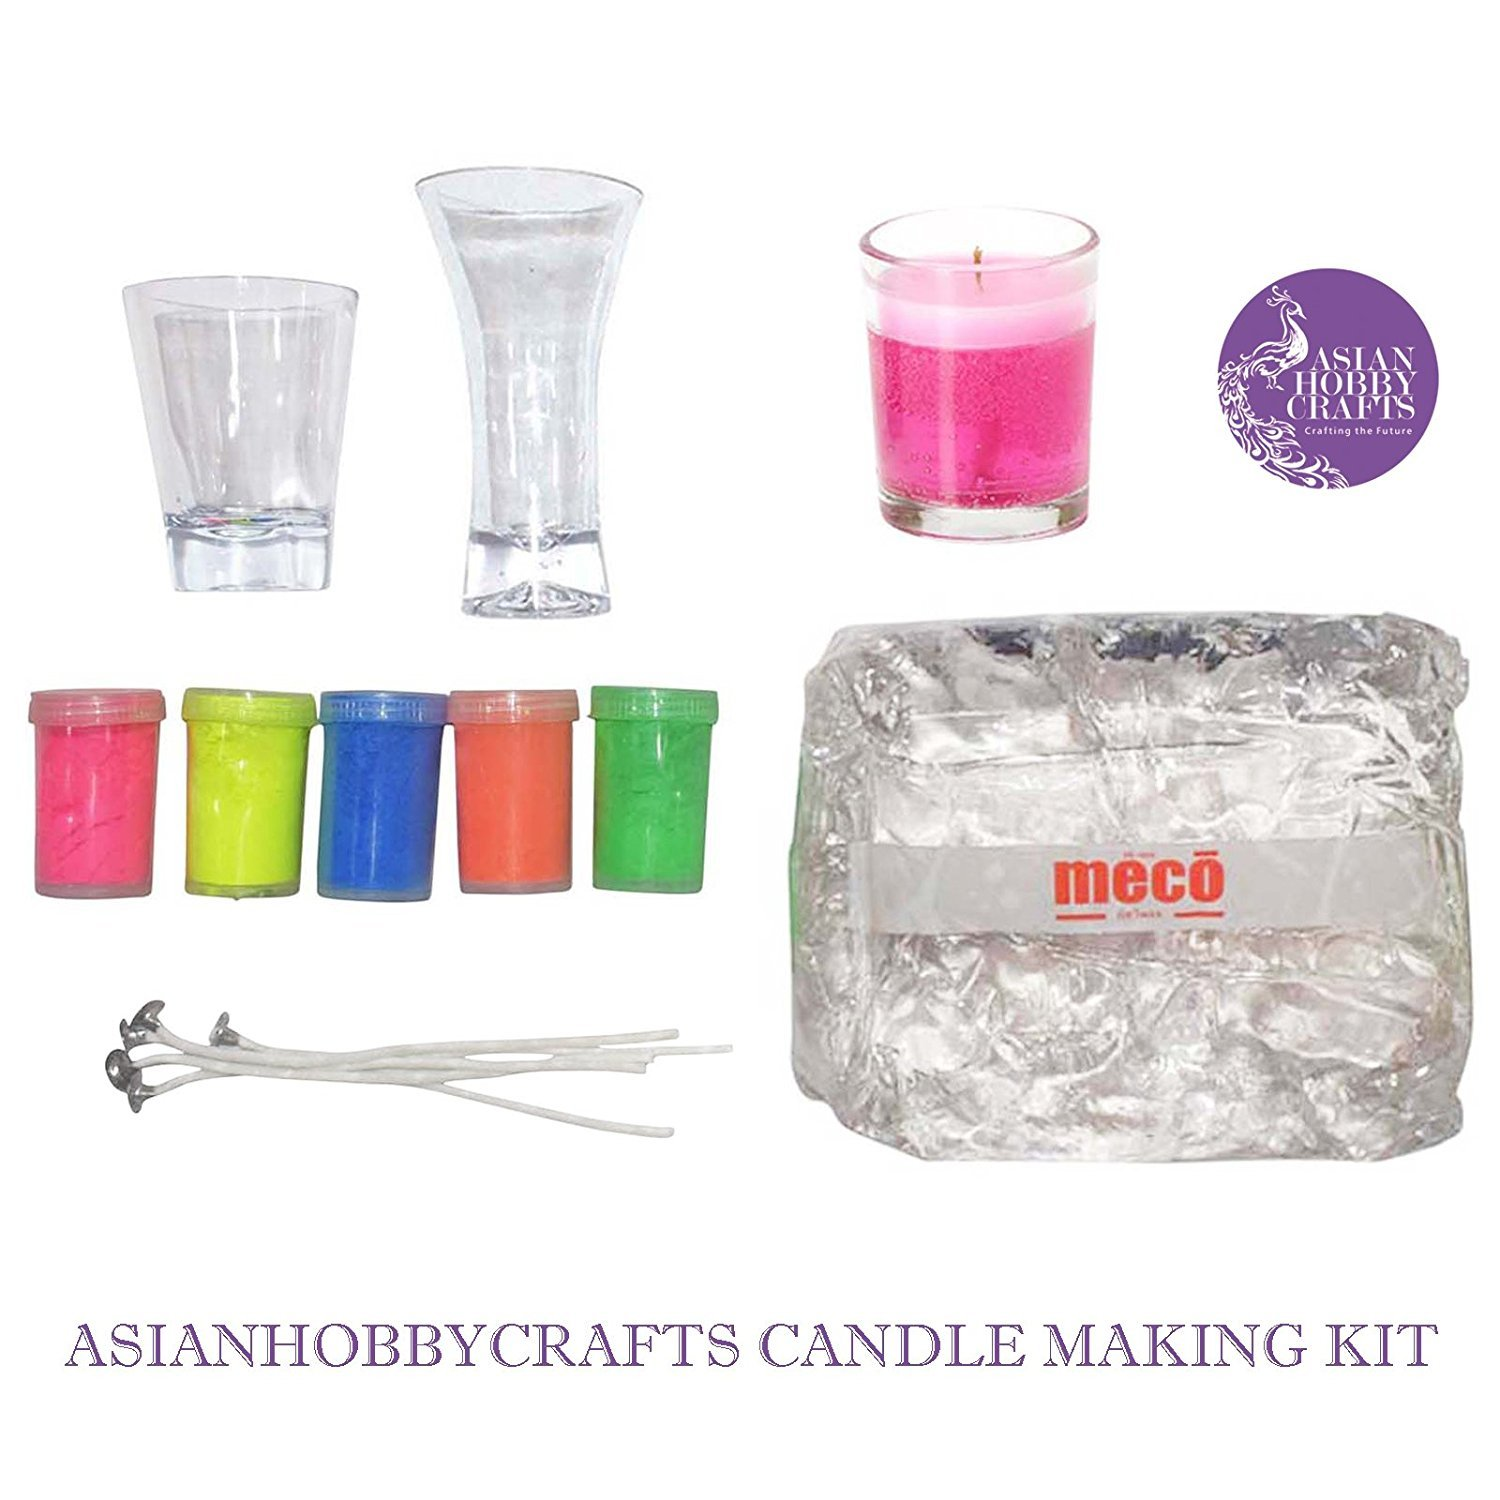 Candle Making Kit Contents: Transparent Gel Candle Wax, Wax Colors, Candle Wicks, Acrylic Candle Container gods grace